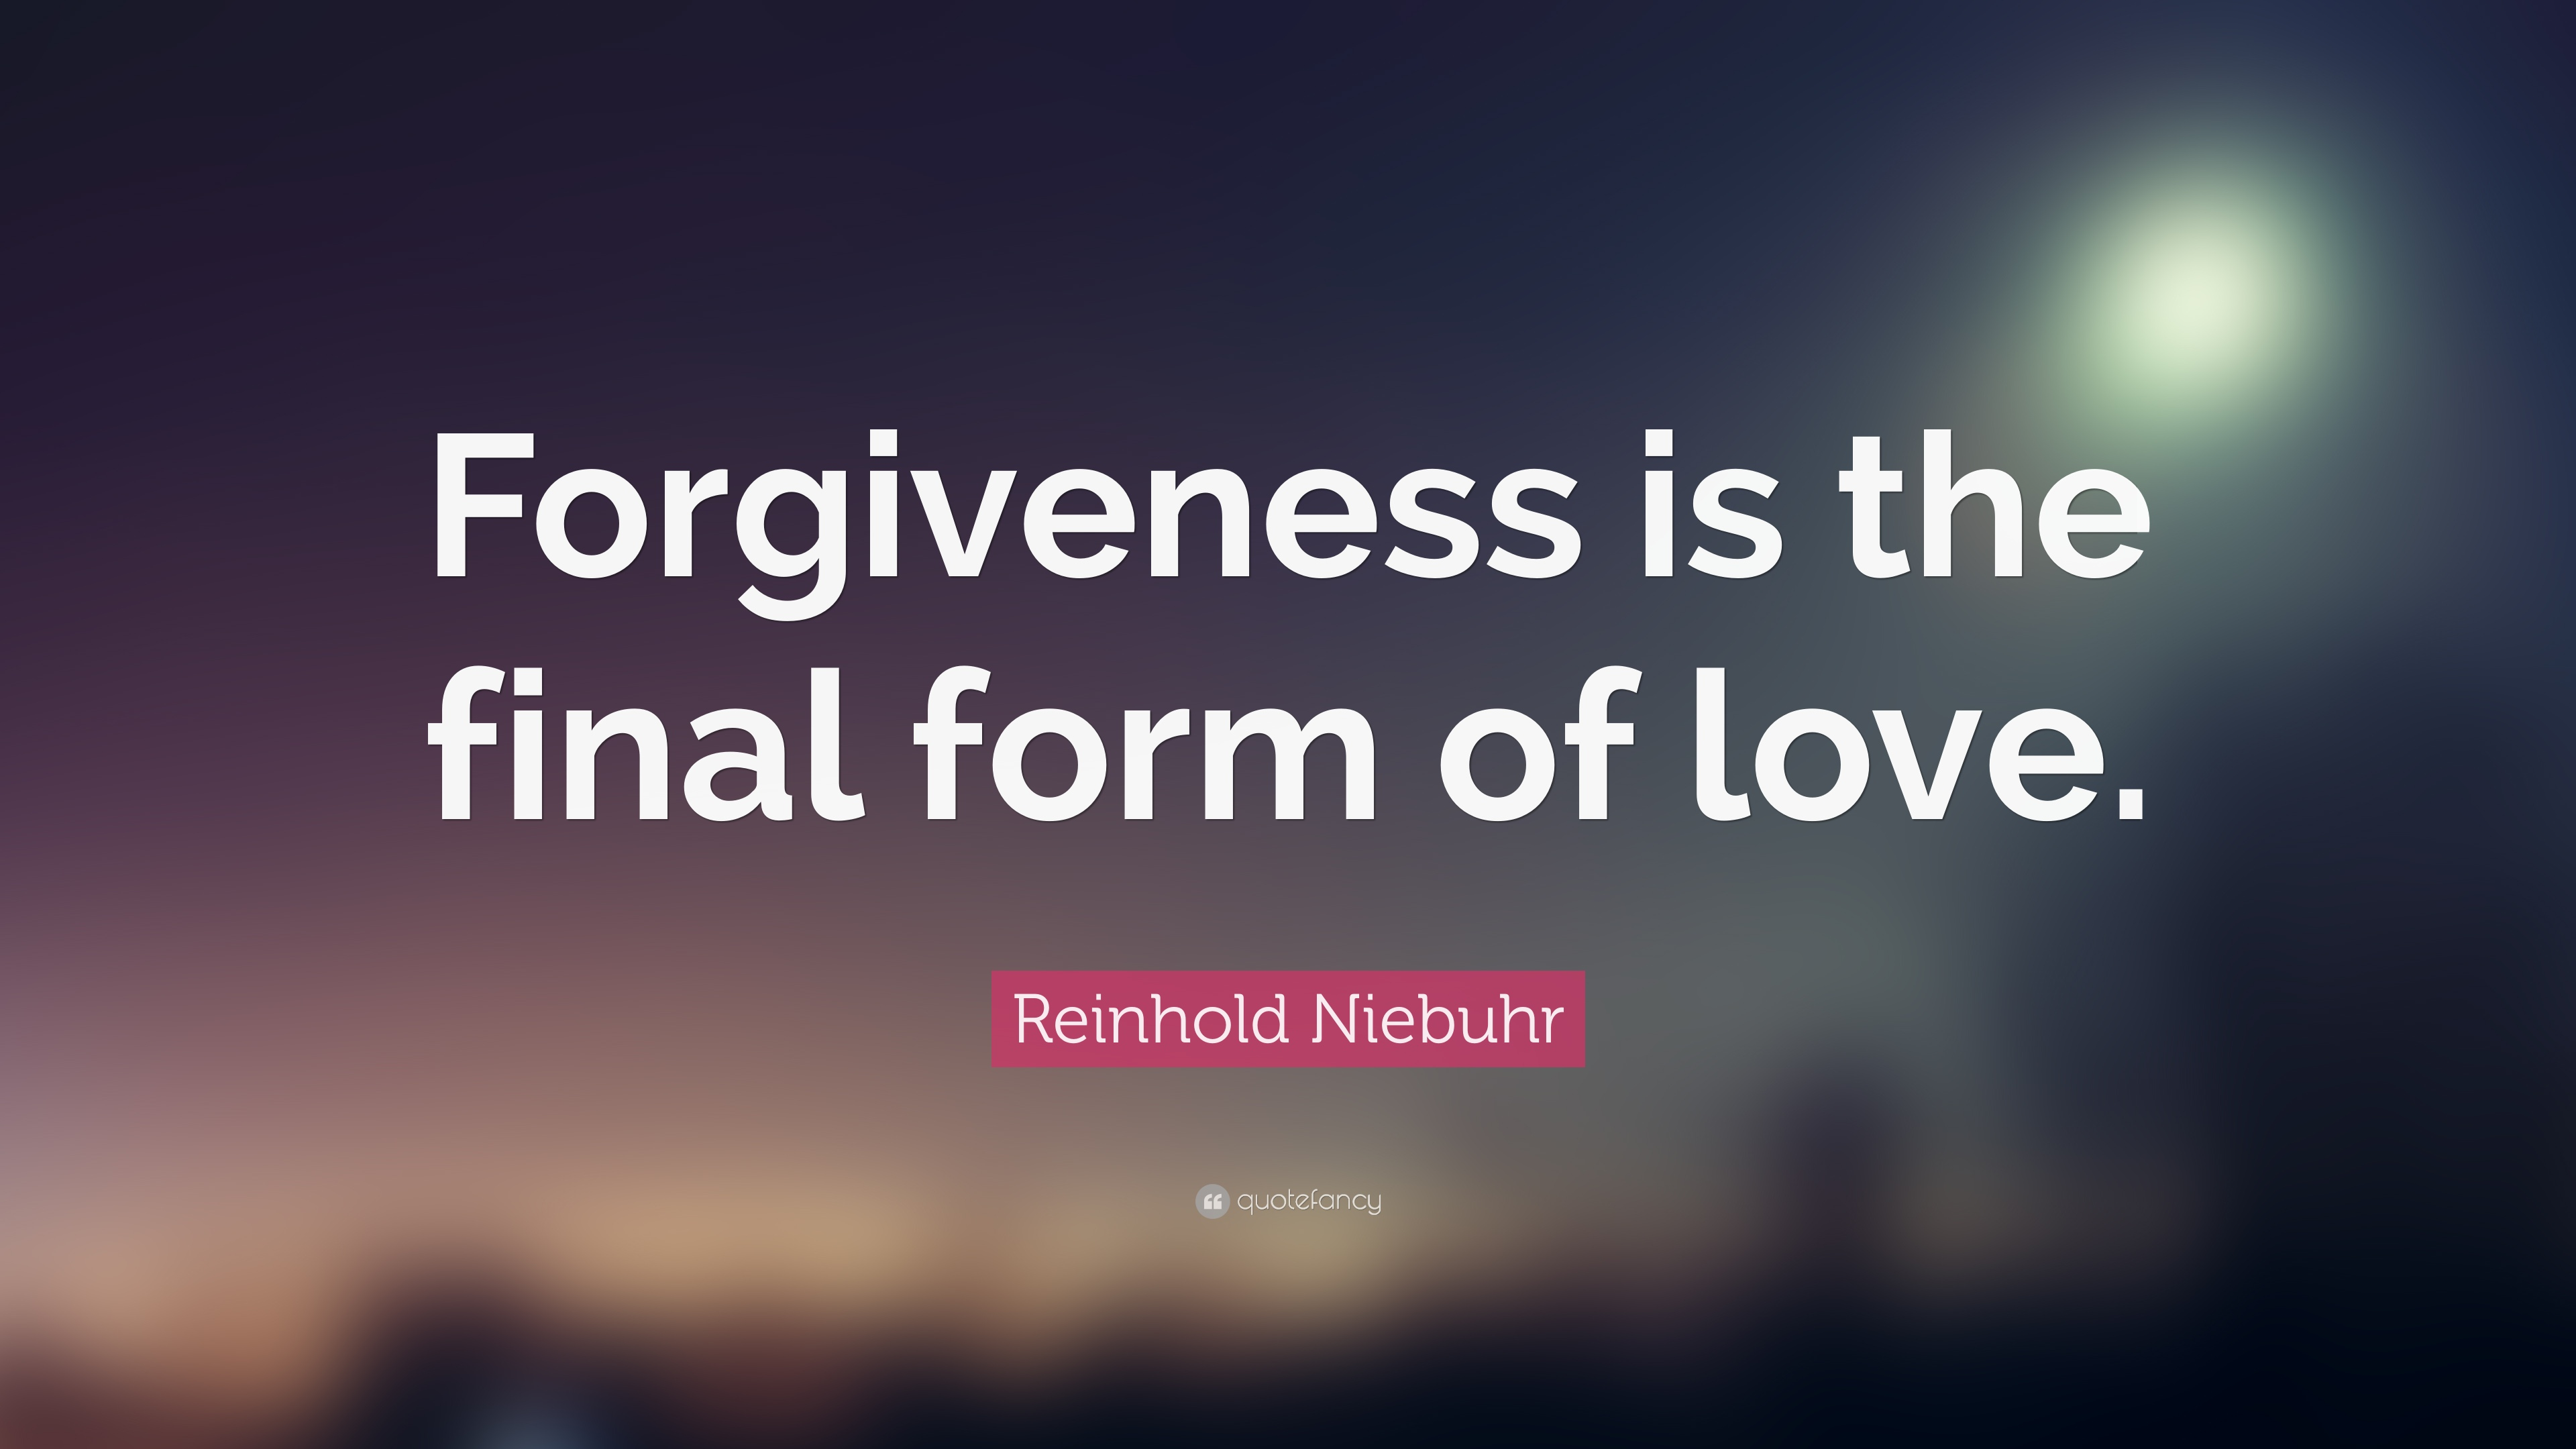 Love And Forgiveness Quotes Forgiveness Quotes 40 Wallpapers  Quotefancy